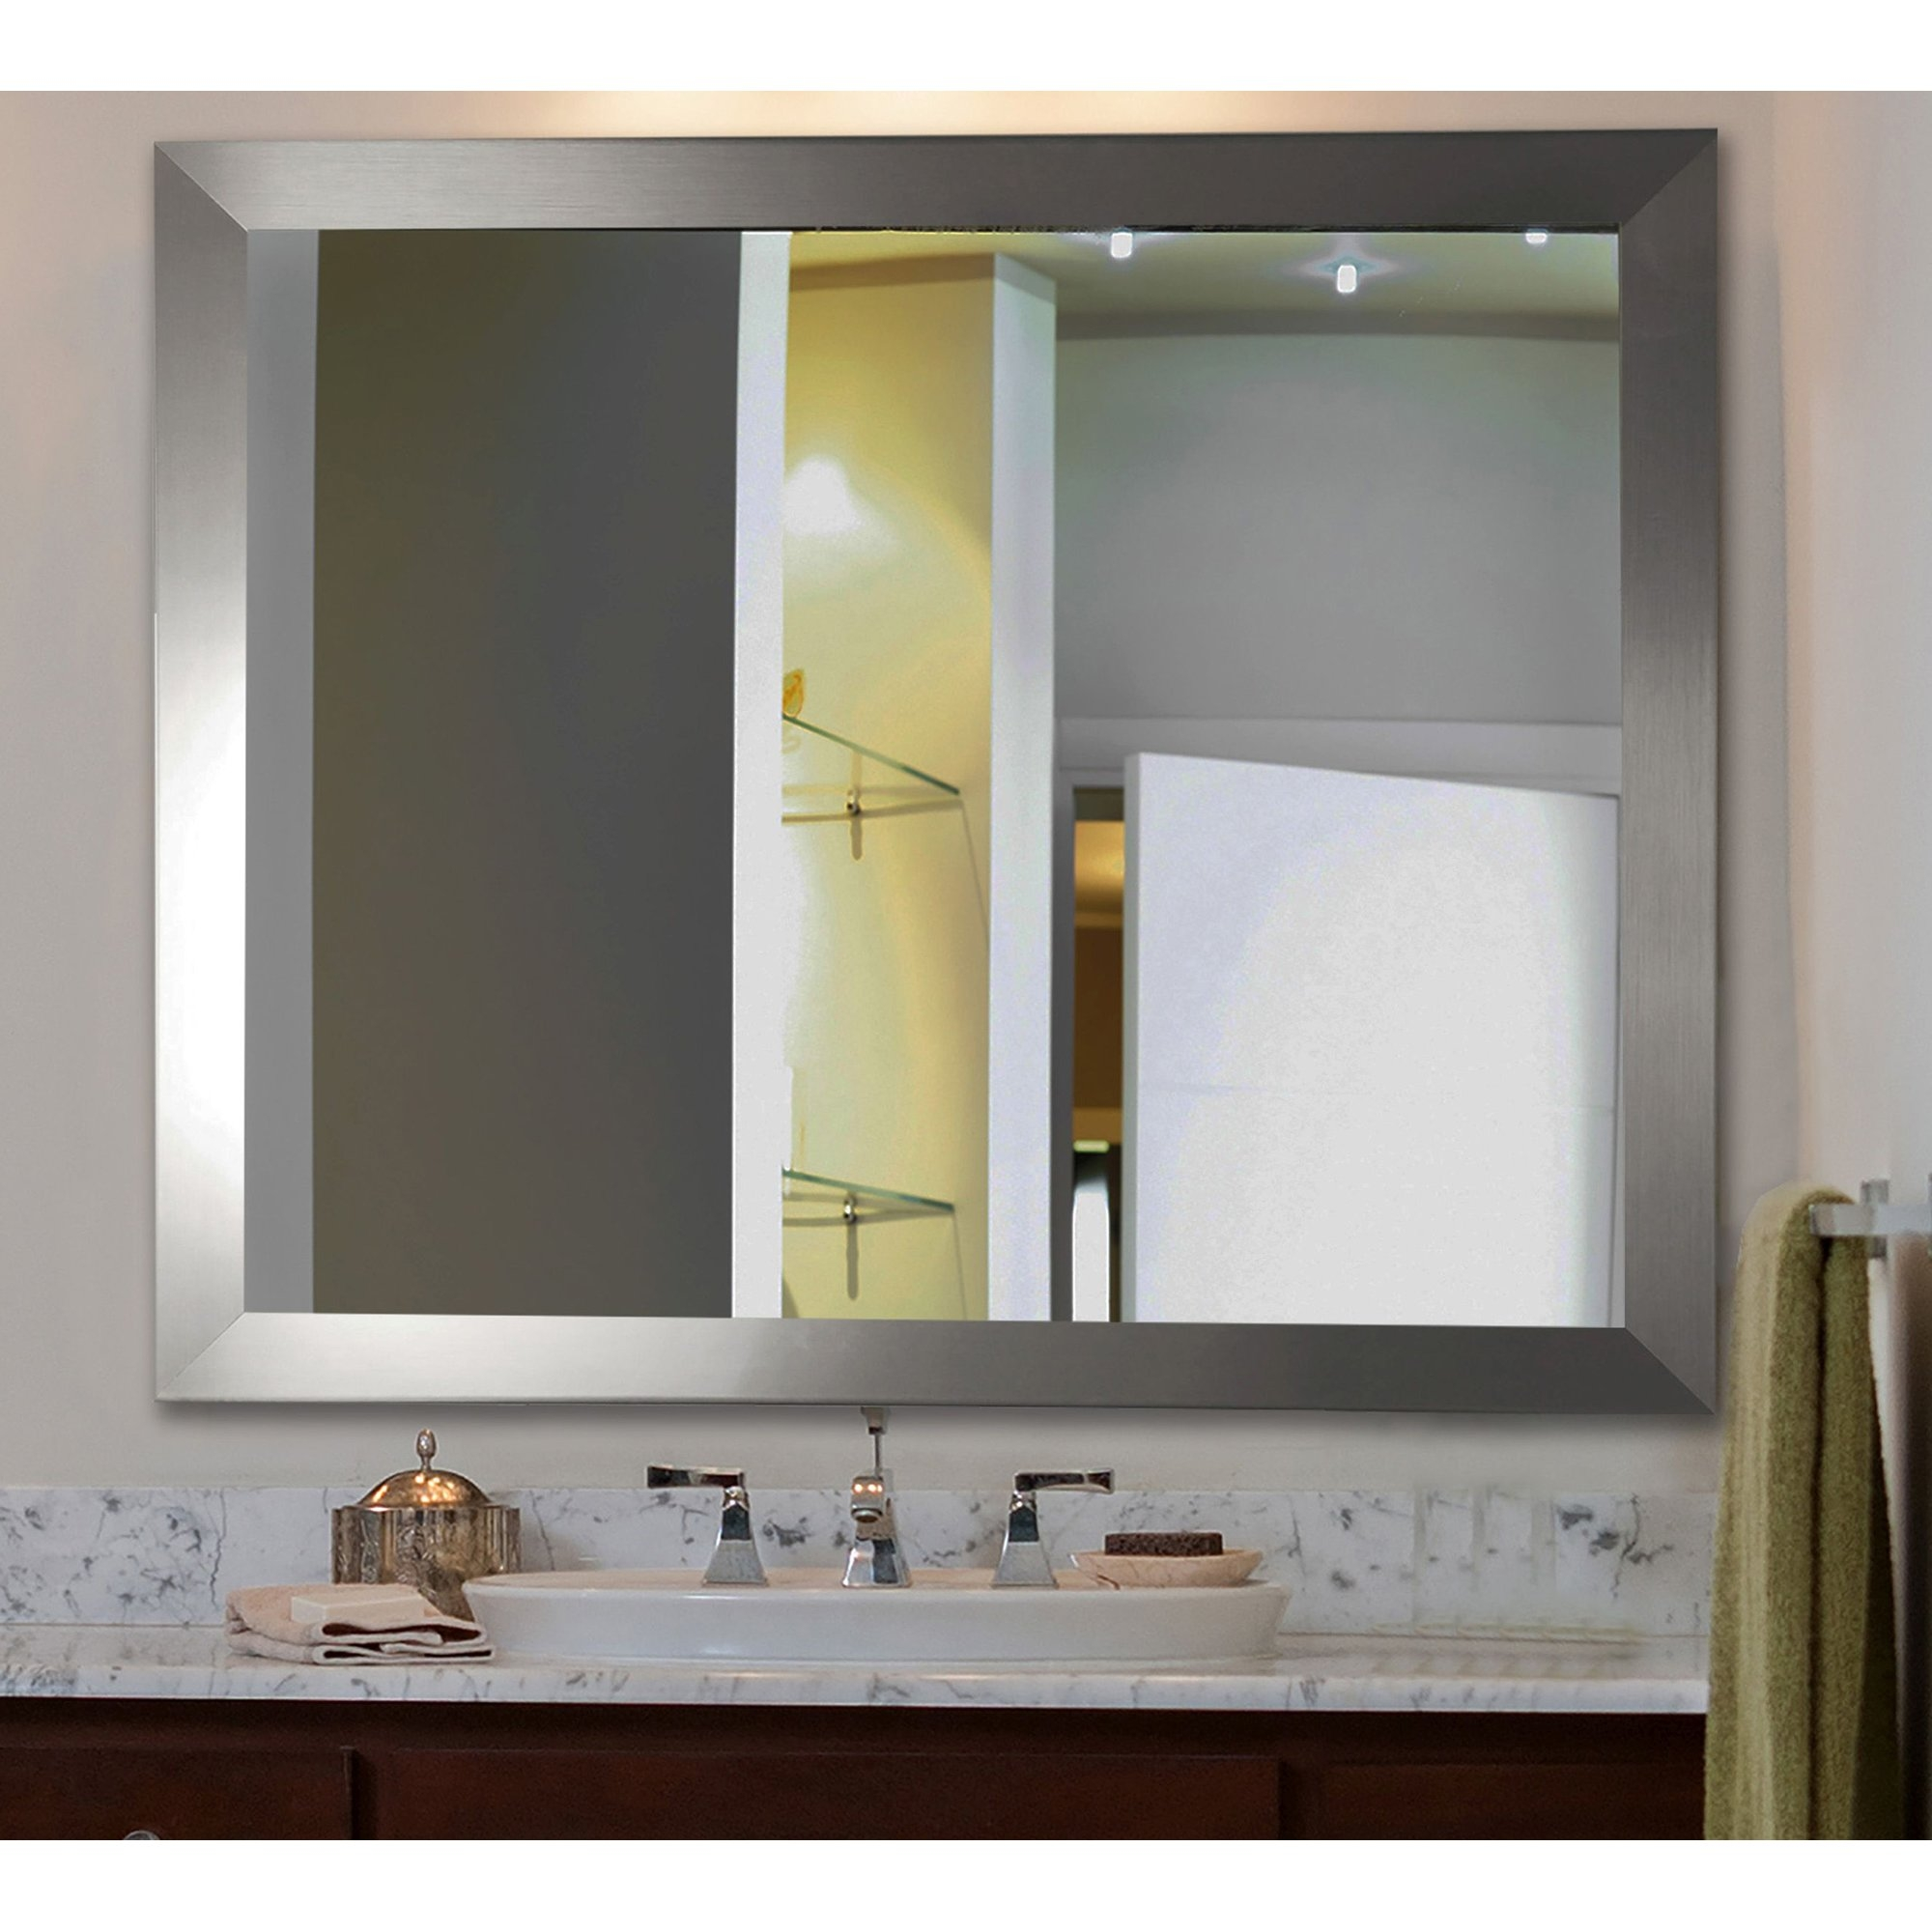 Large Oversized Wall Mirrors Youll Love Wayfair With Oversized Mirrors For Sale (Image 13 of 15)